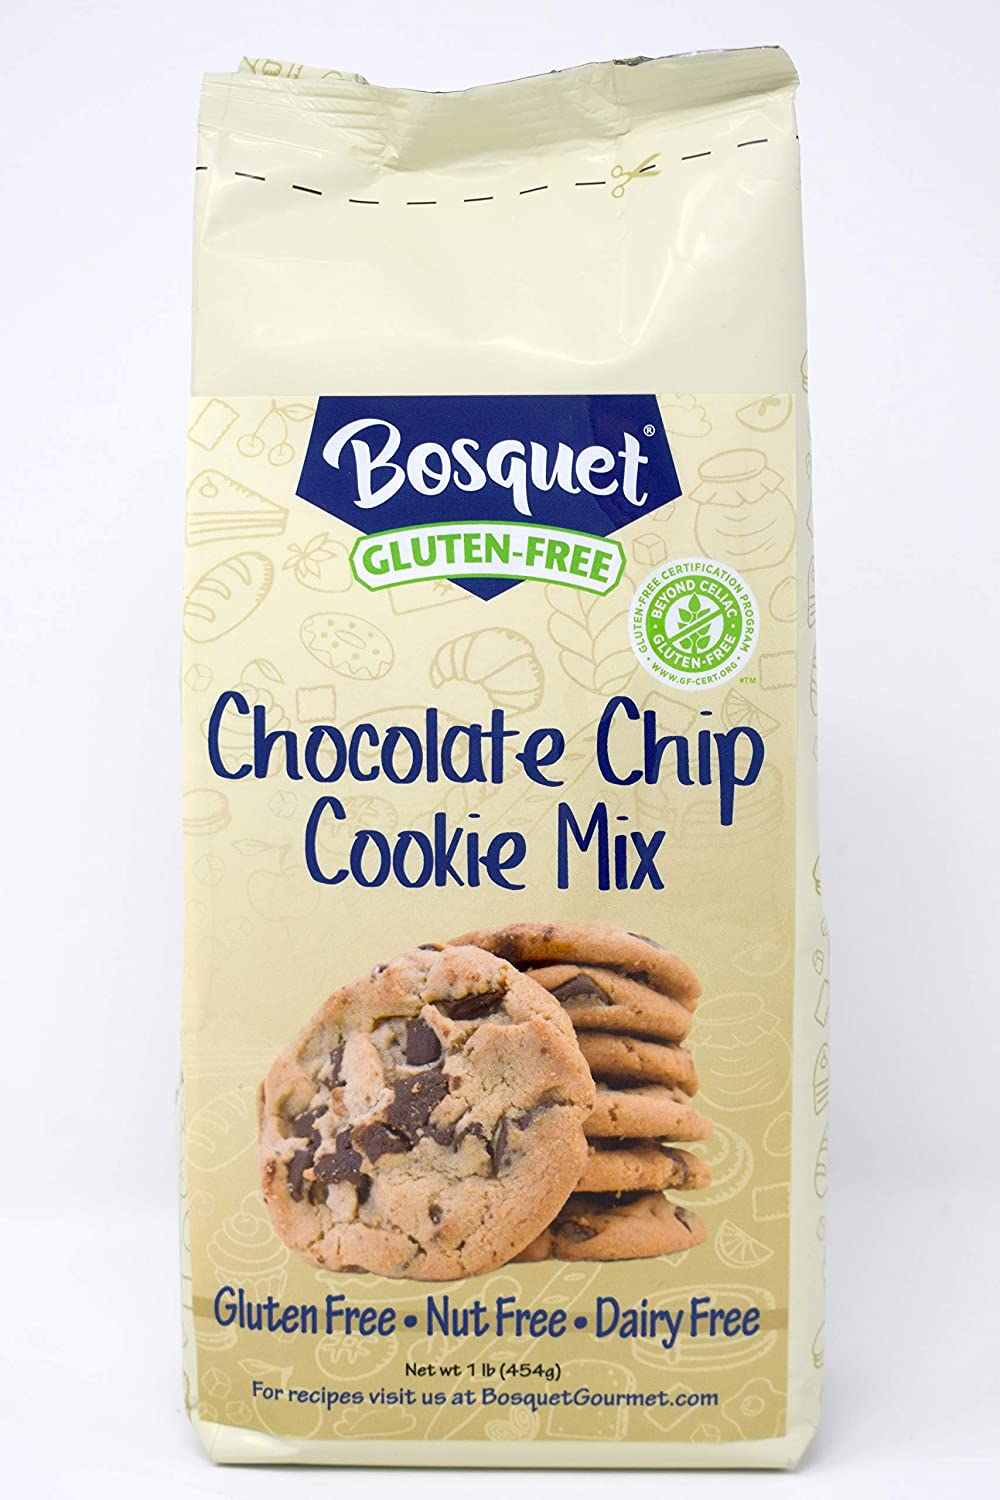 Bosquet Gluten-Free Chocolate Chip Mix count 1 SEAL limited product Cookie Don't miss the campaign